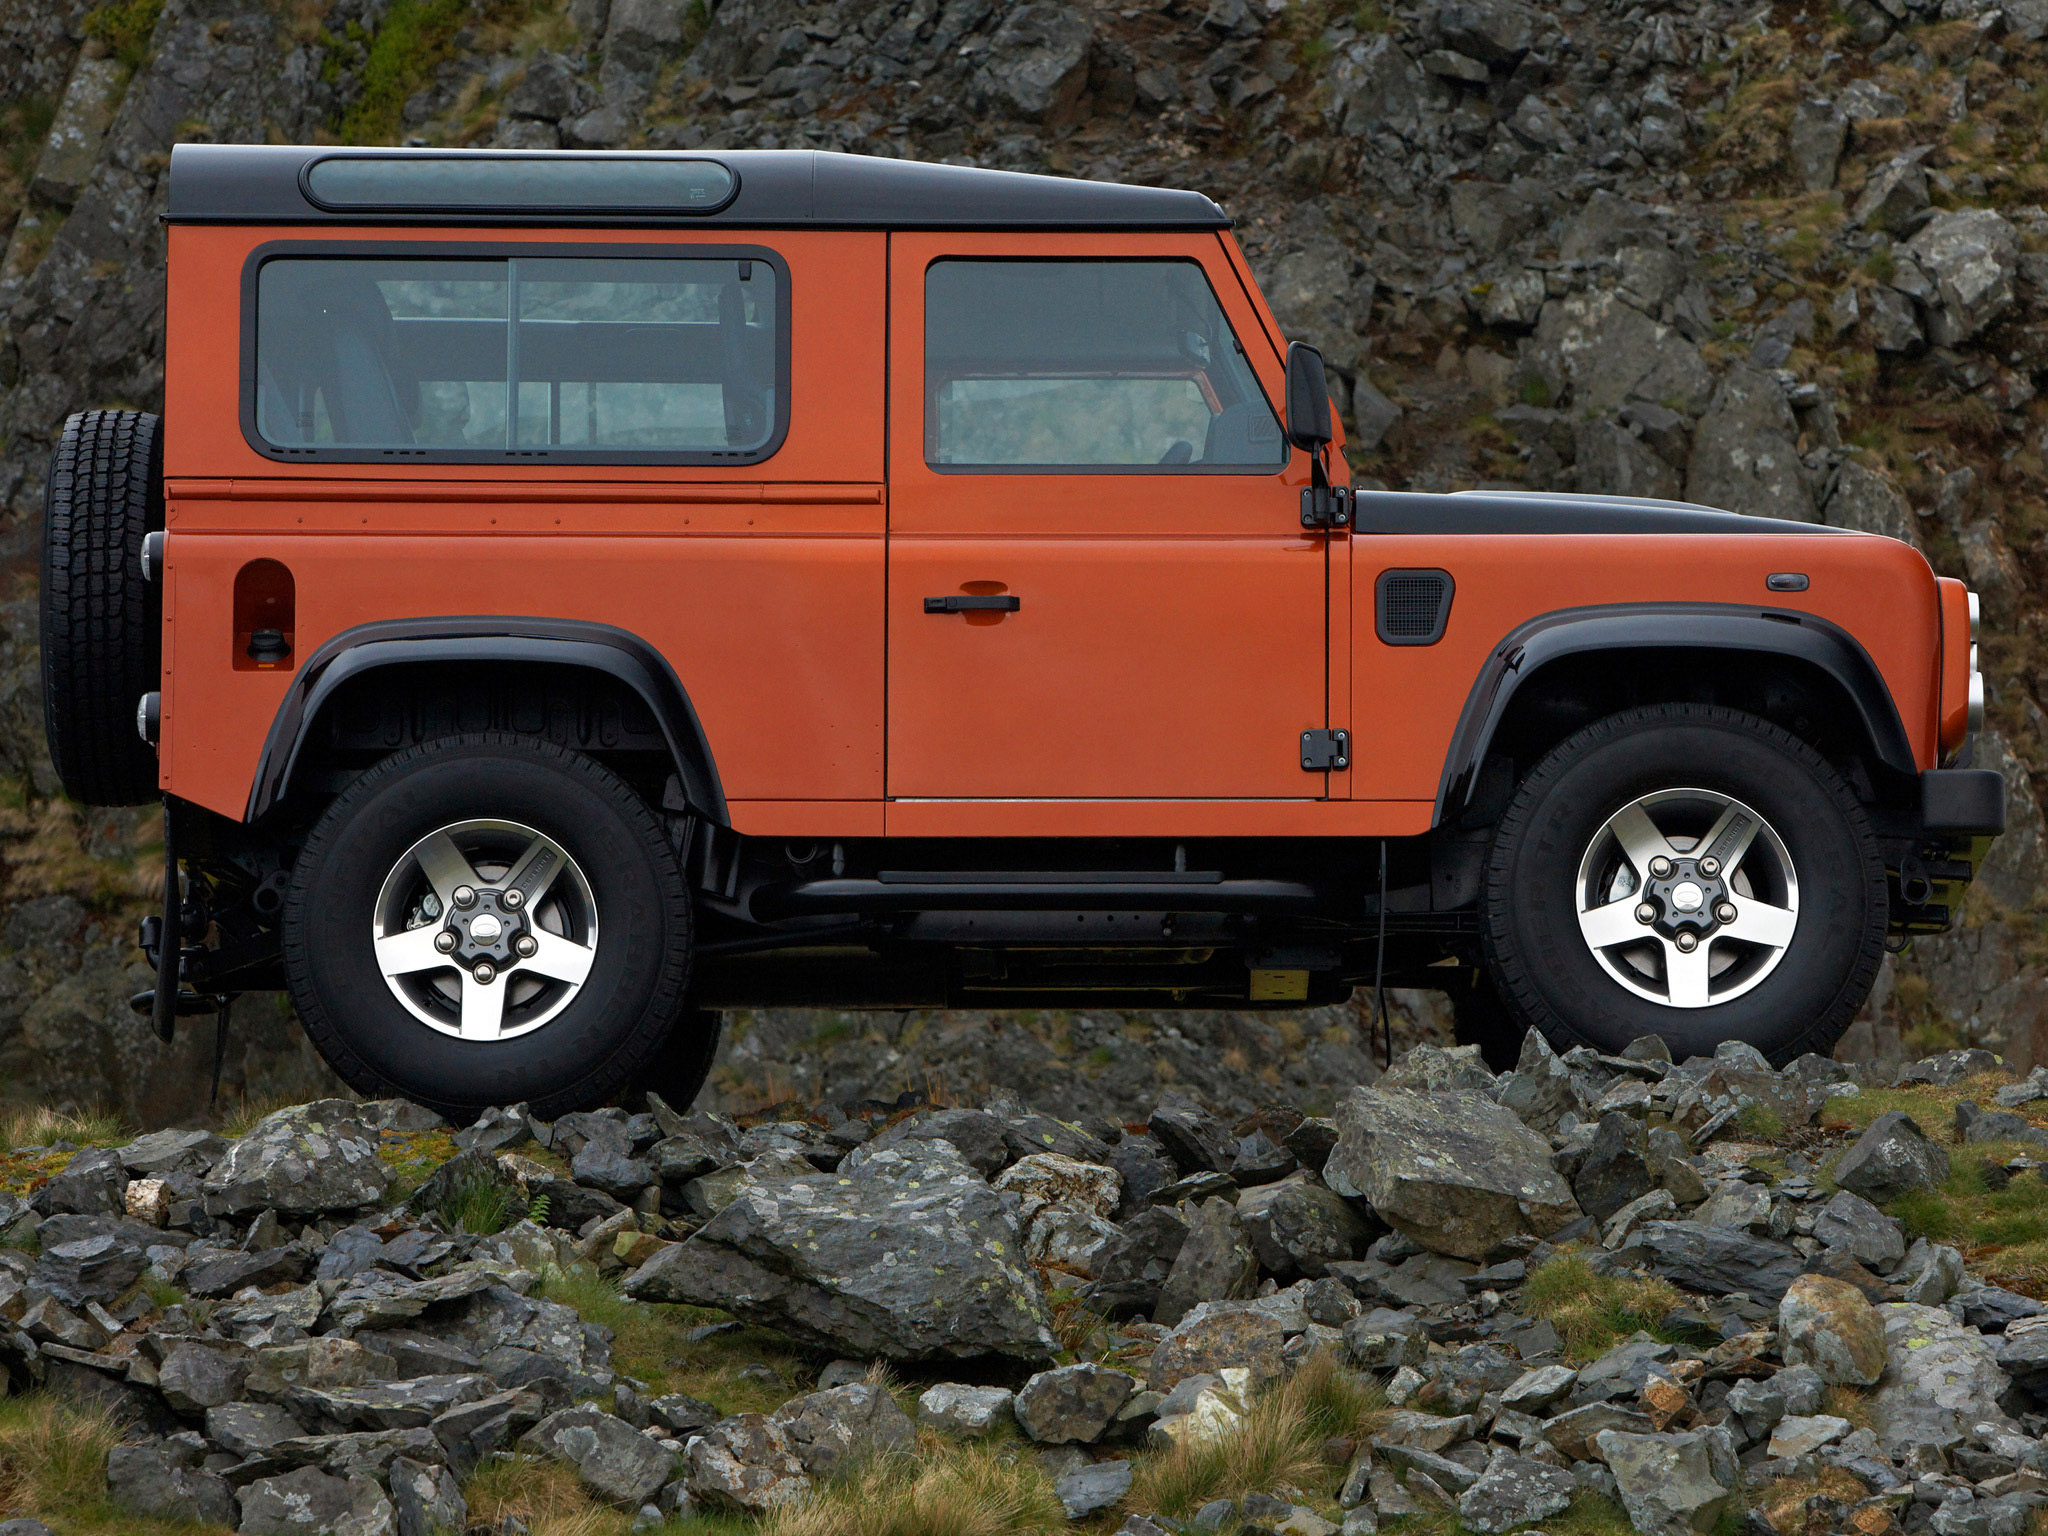 LAND ROVER DEFENDER FIRE 2009 CAR 1